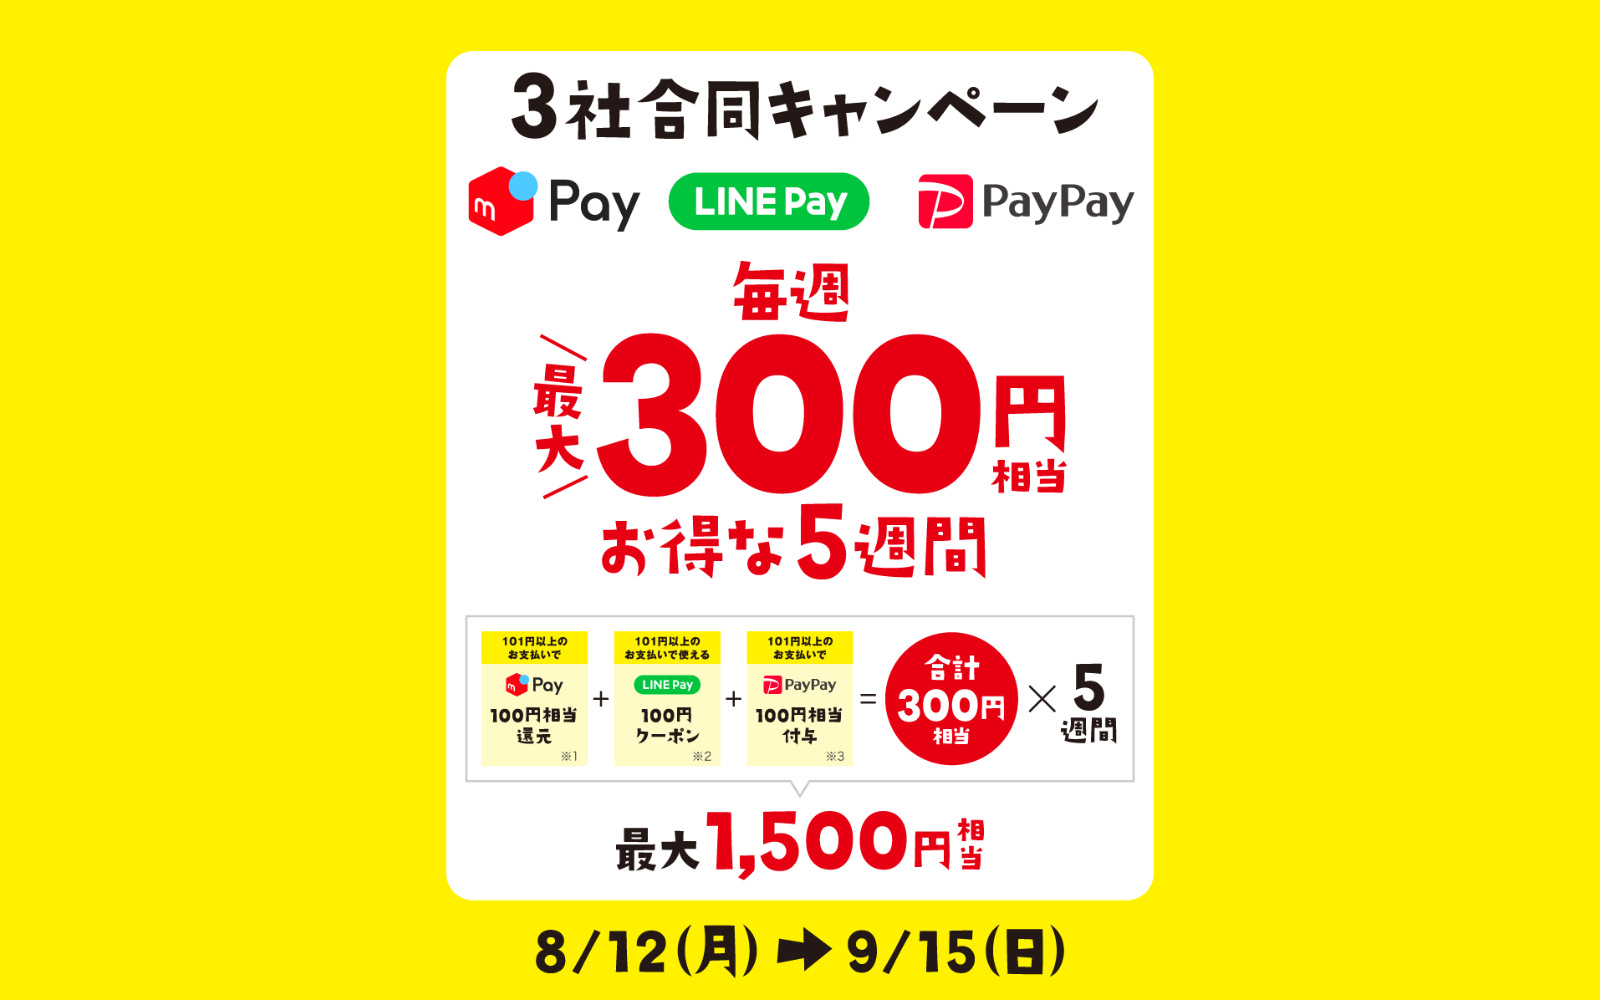 PayPay-MerPay-LinePay-Campaign-2.jpg